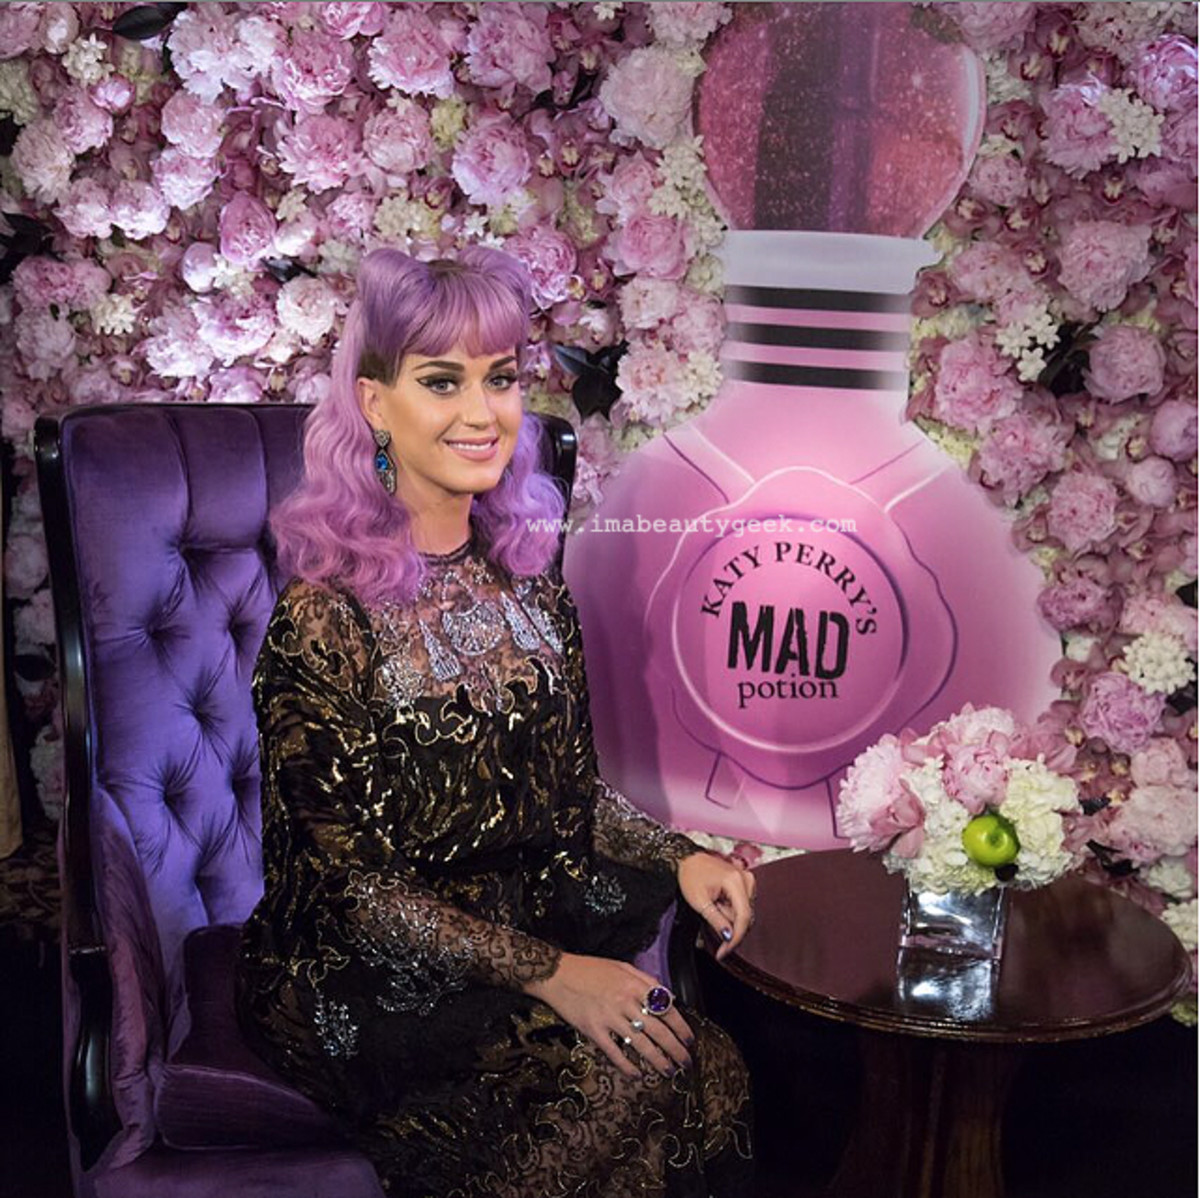 Katy Perry is selling Mad Potion fragrance via twitter